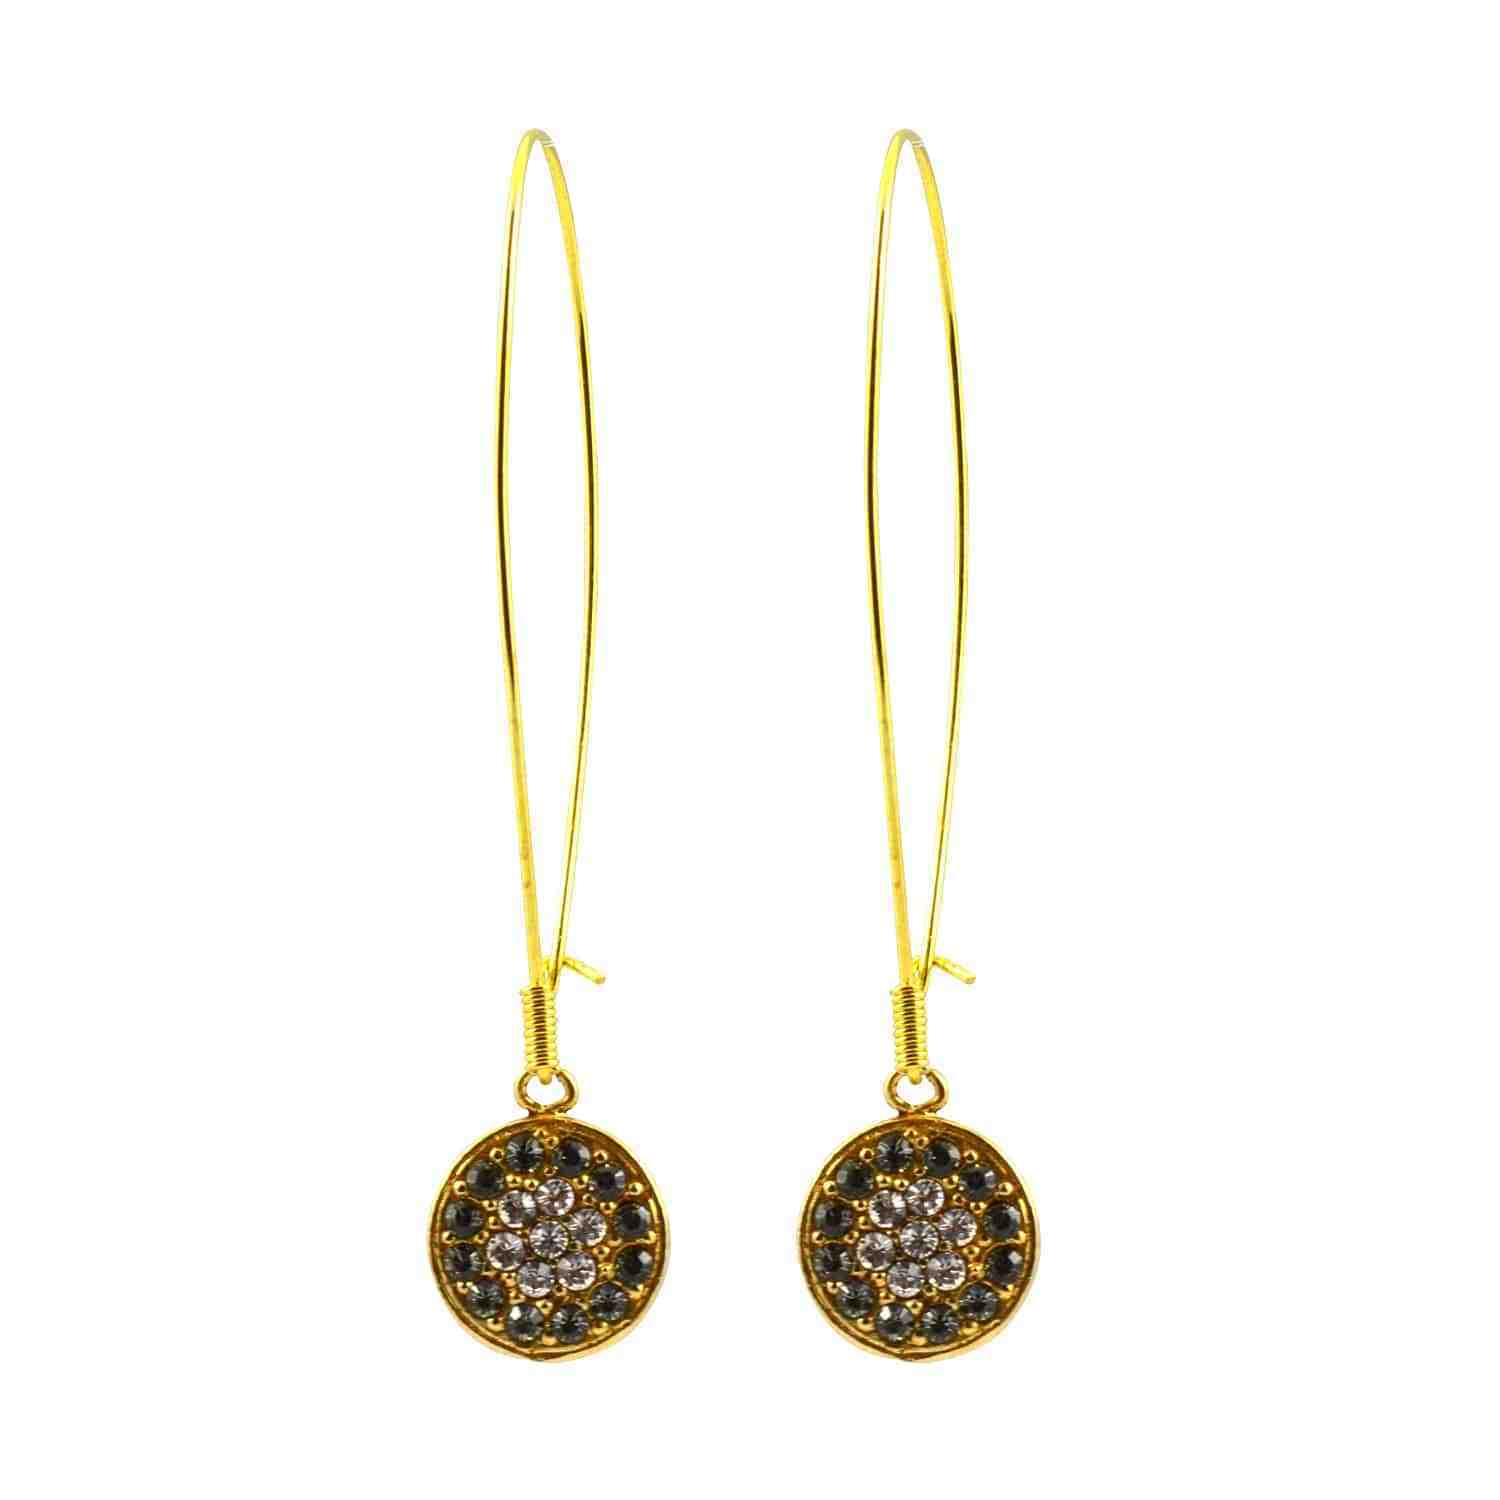 La Vie Parisienne gold Plated Round Dangle Earrings w Swarovski Crystal